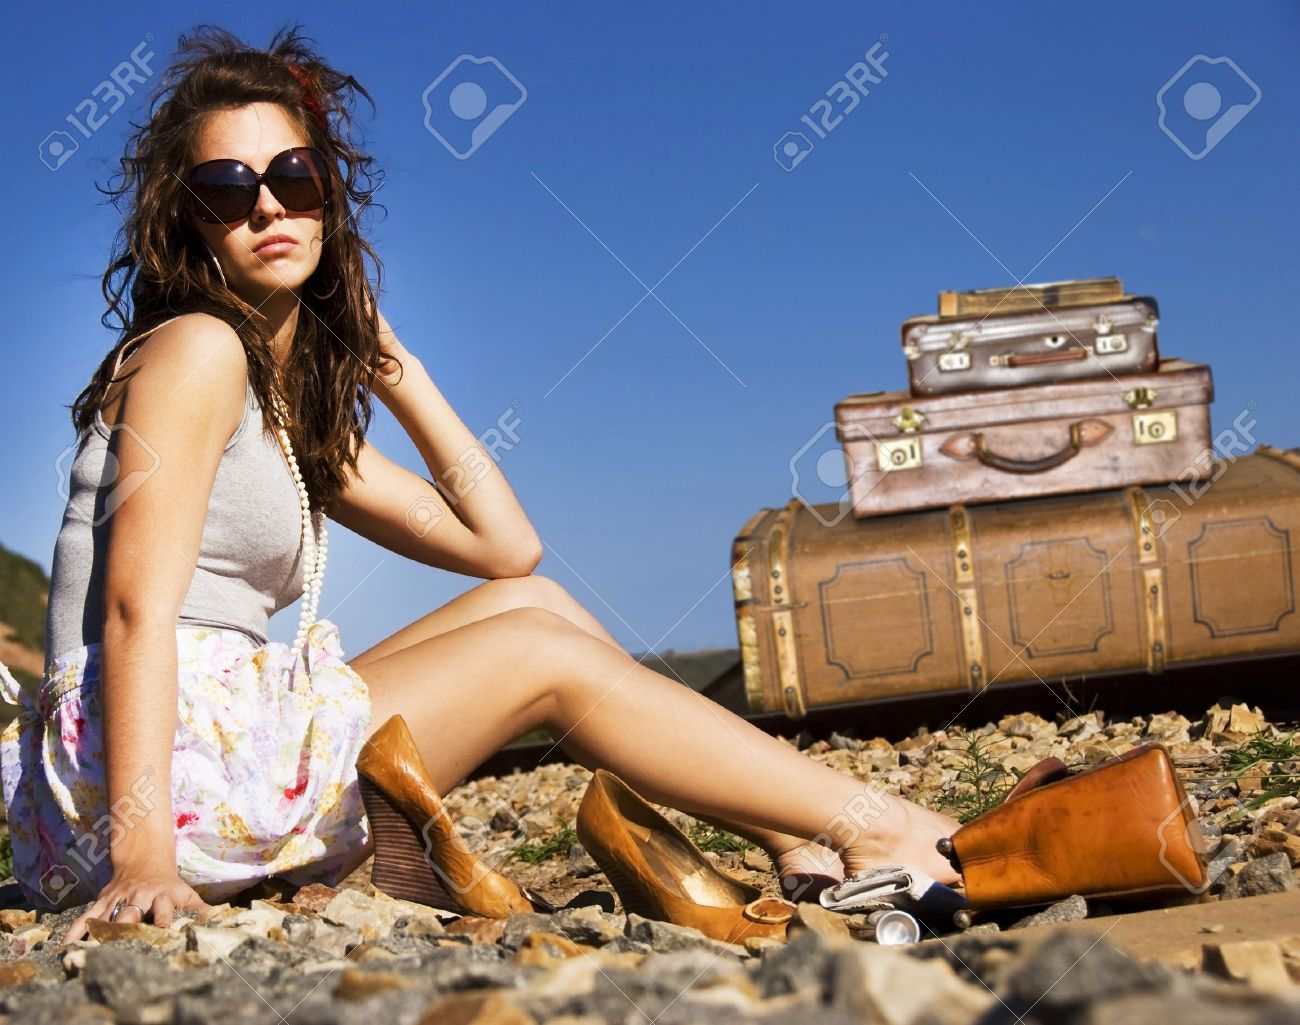 Young traveling woman with her suitcases along the road Stock Photo - 9670128